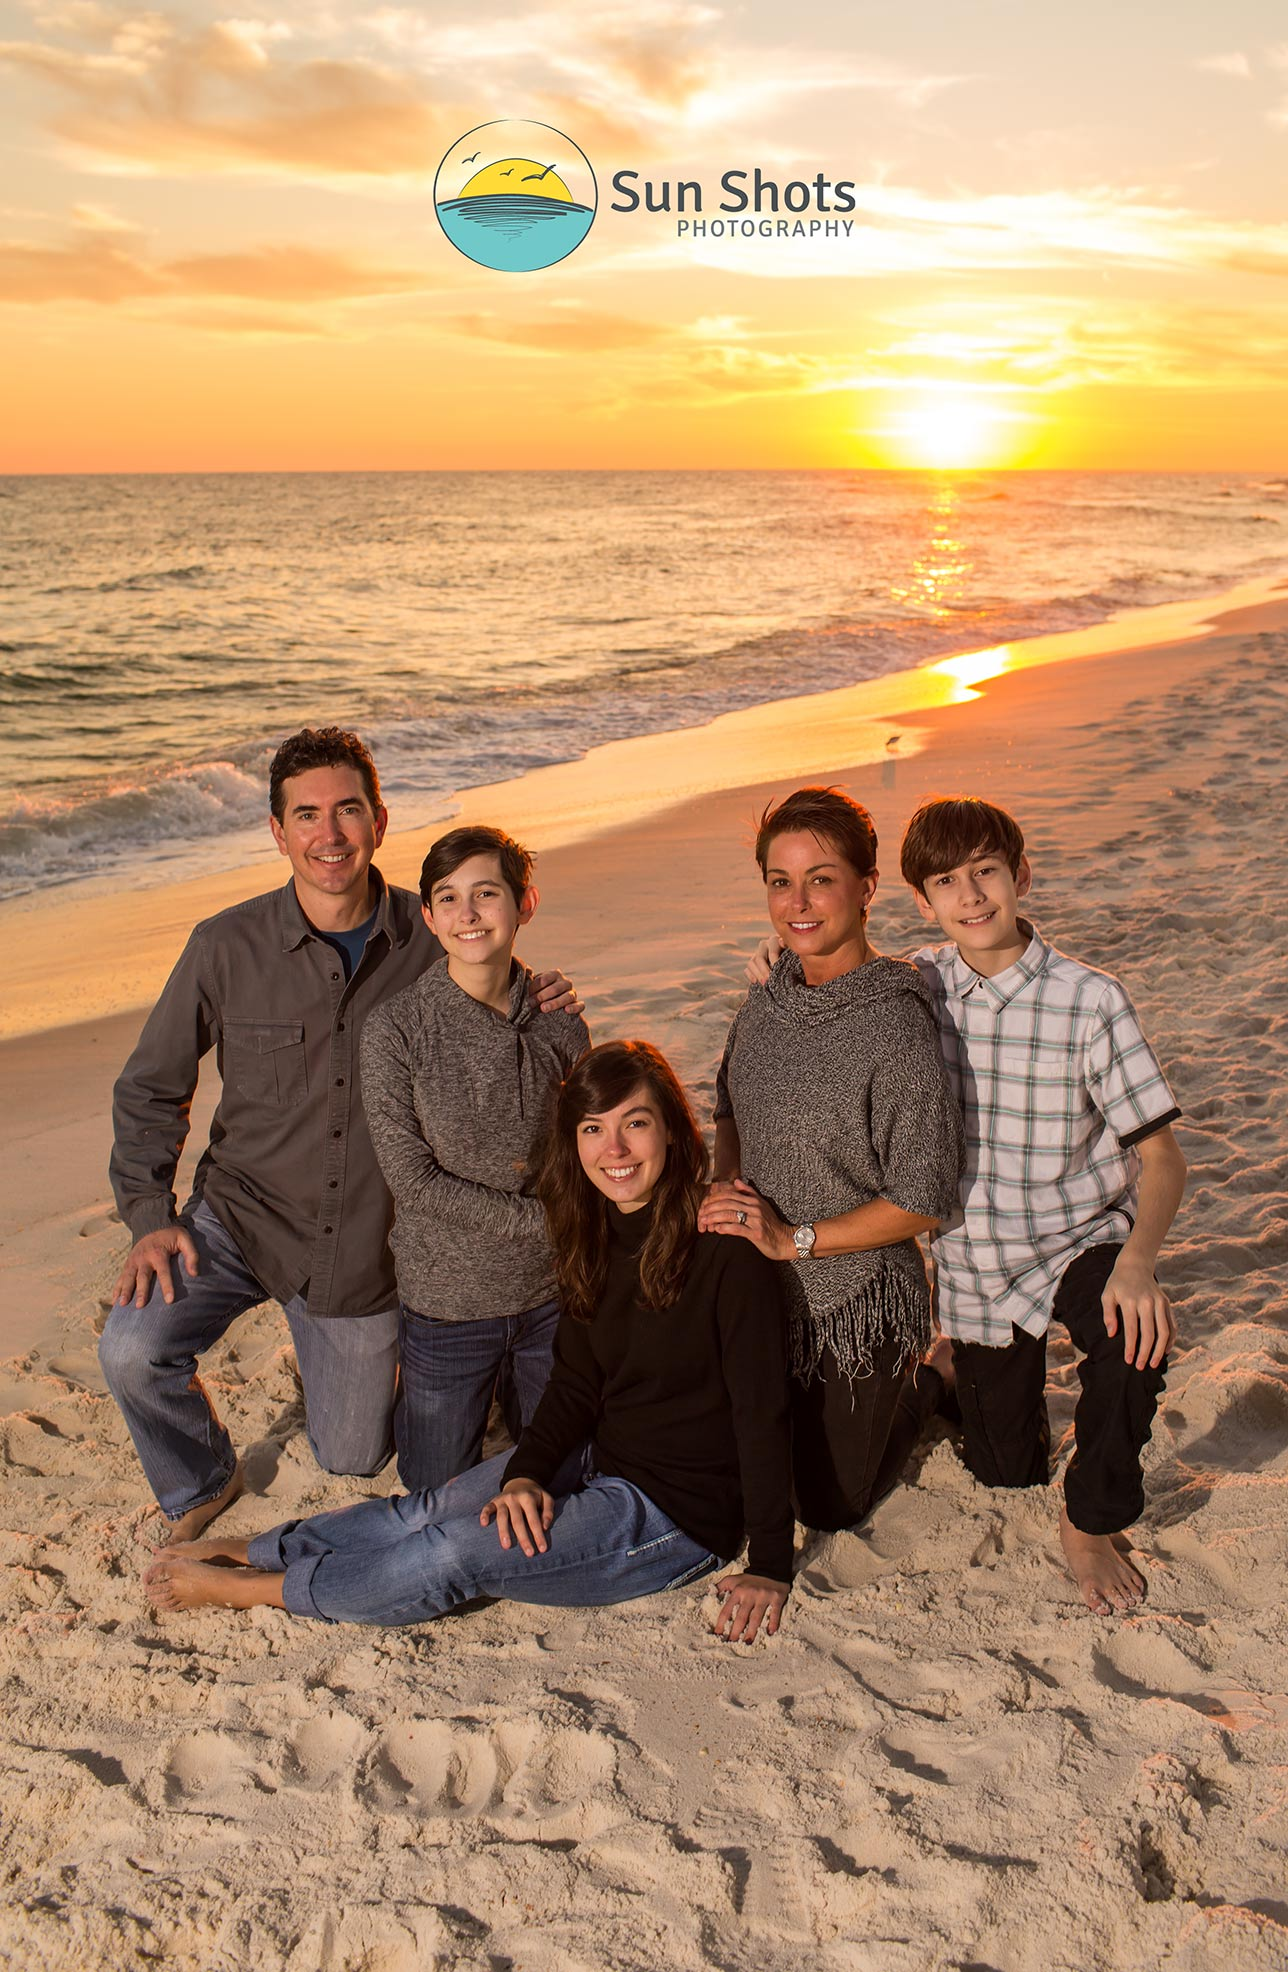 Family portrait on beach with sunsetting behind them over the ocean.